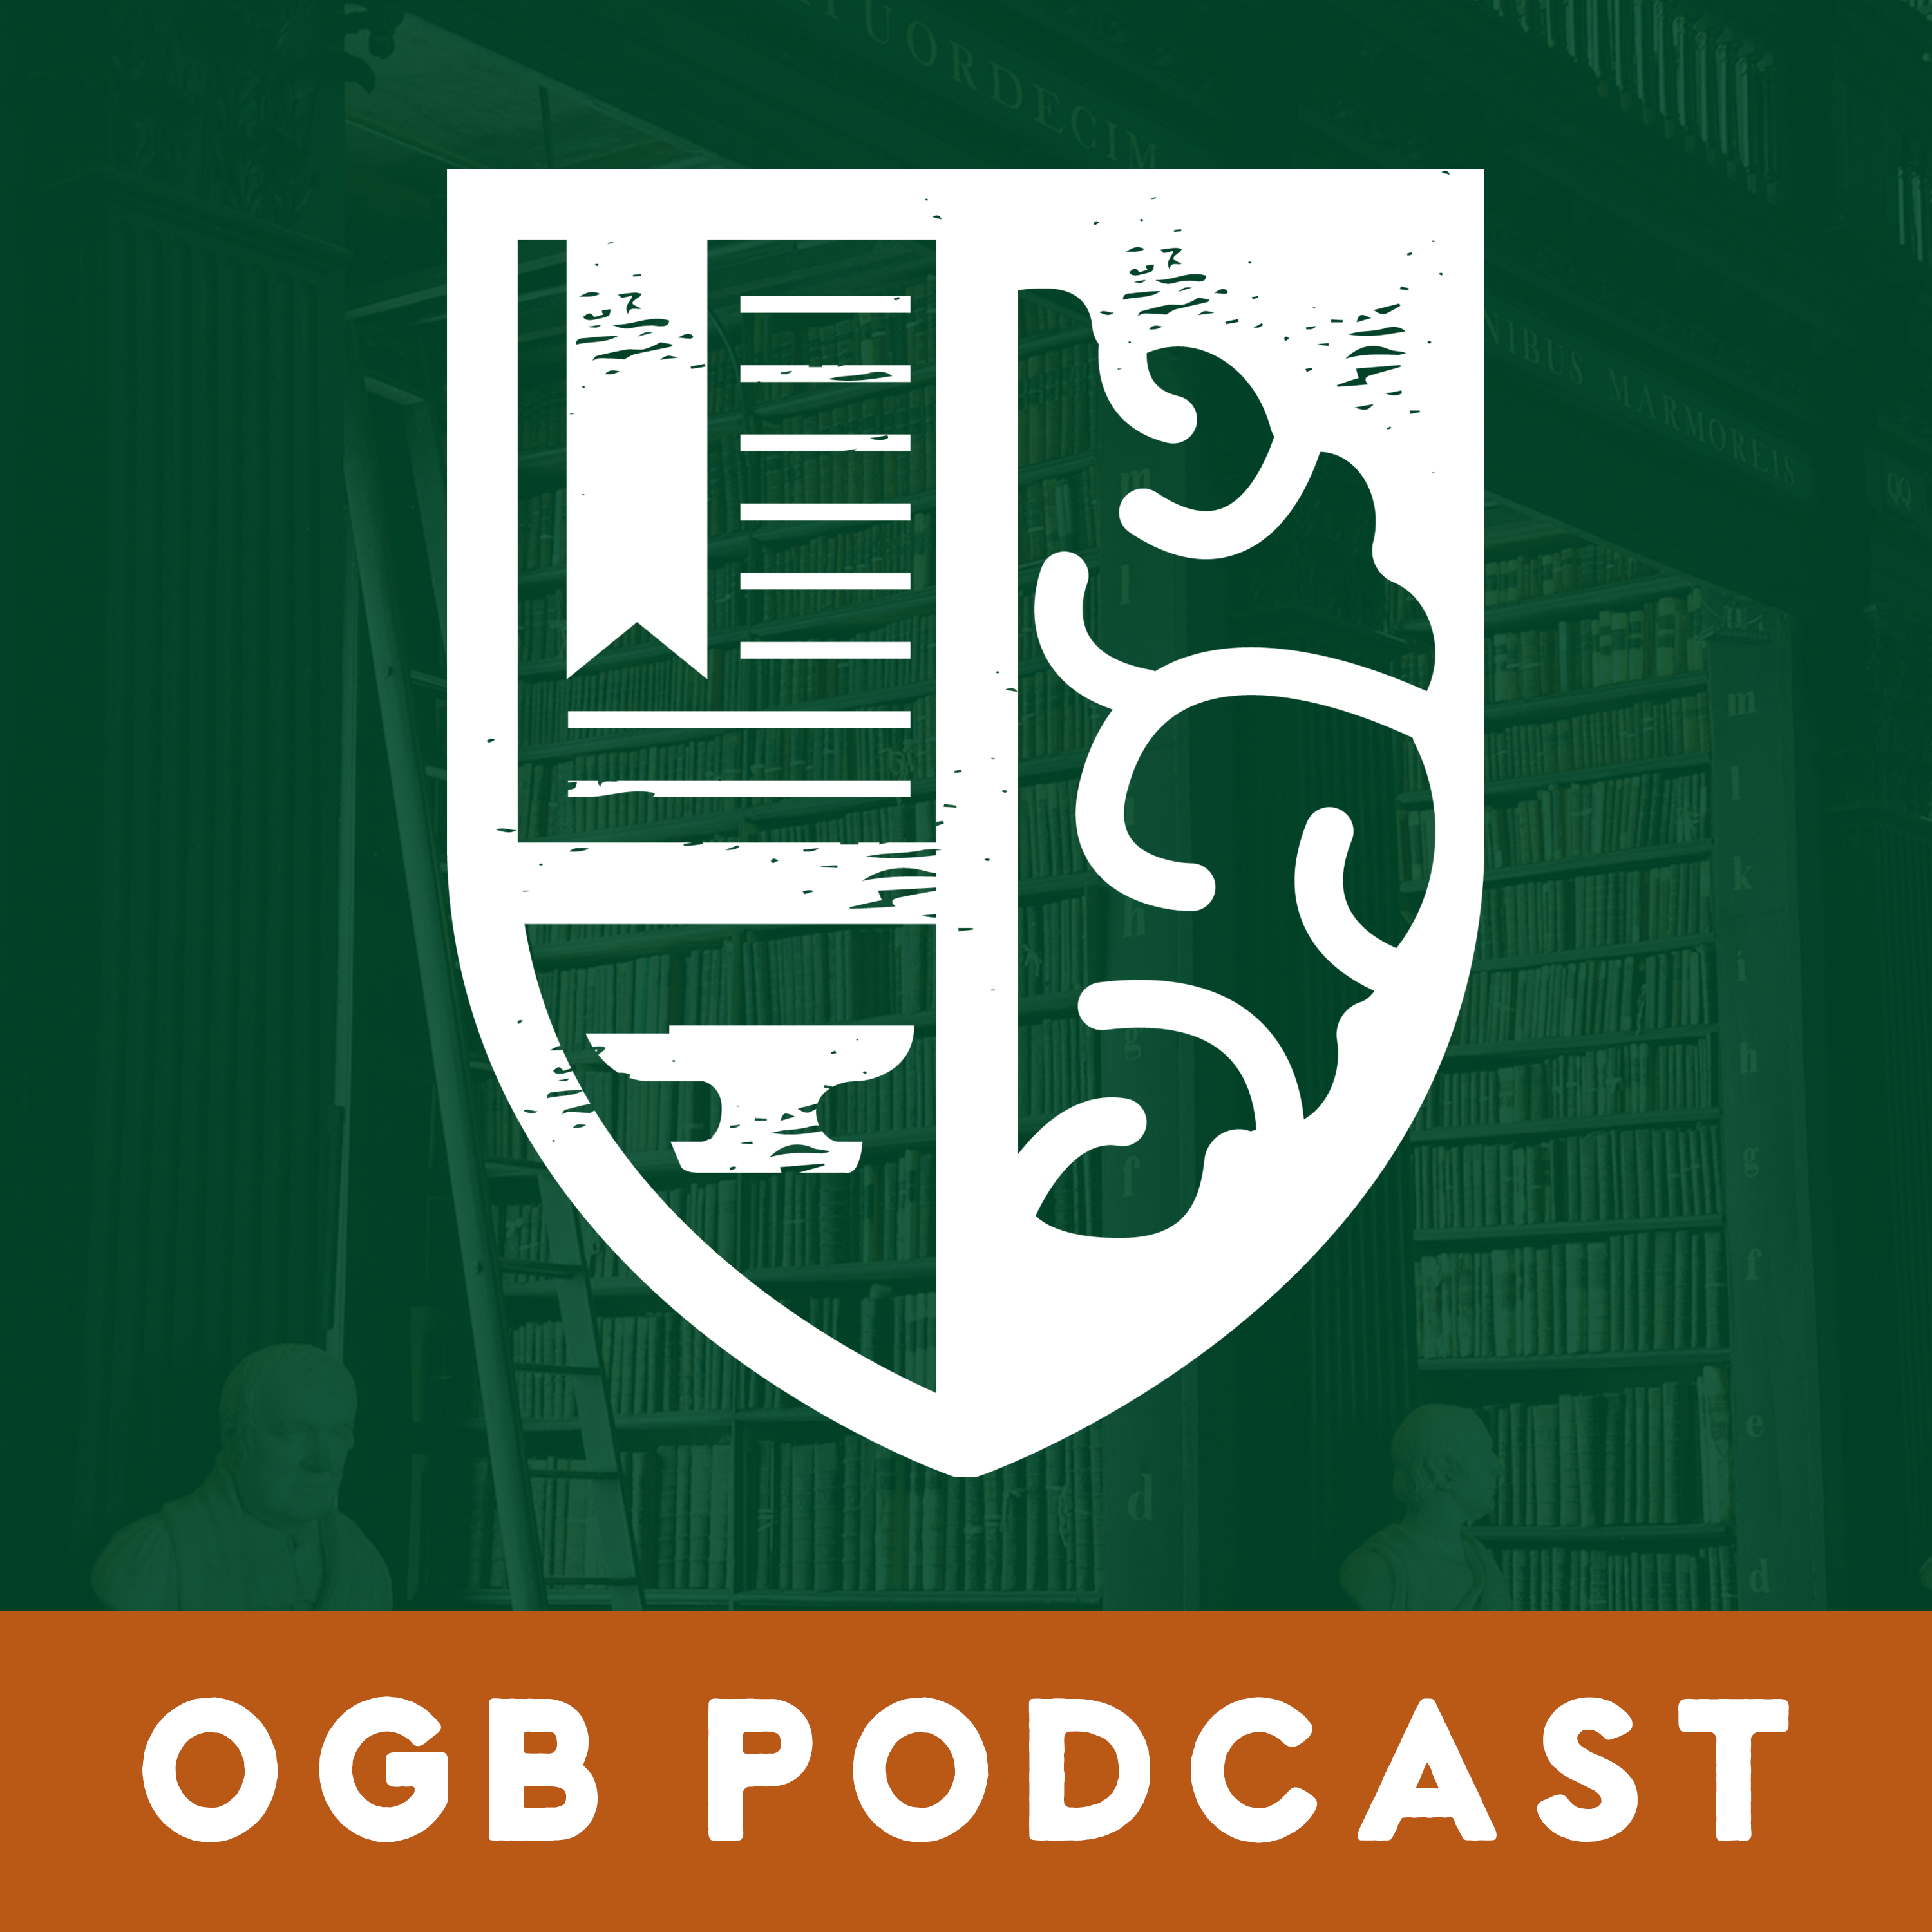 Online Great Books Podcast show art